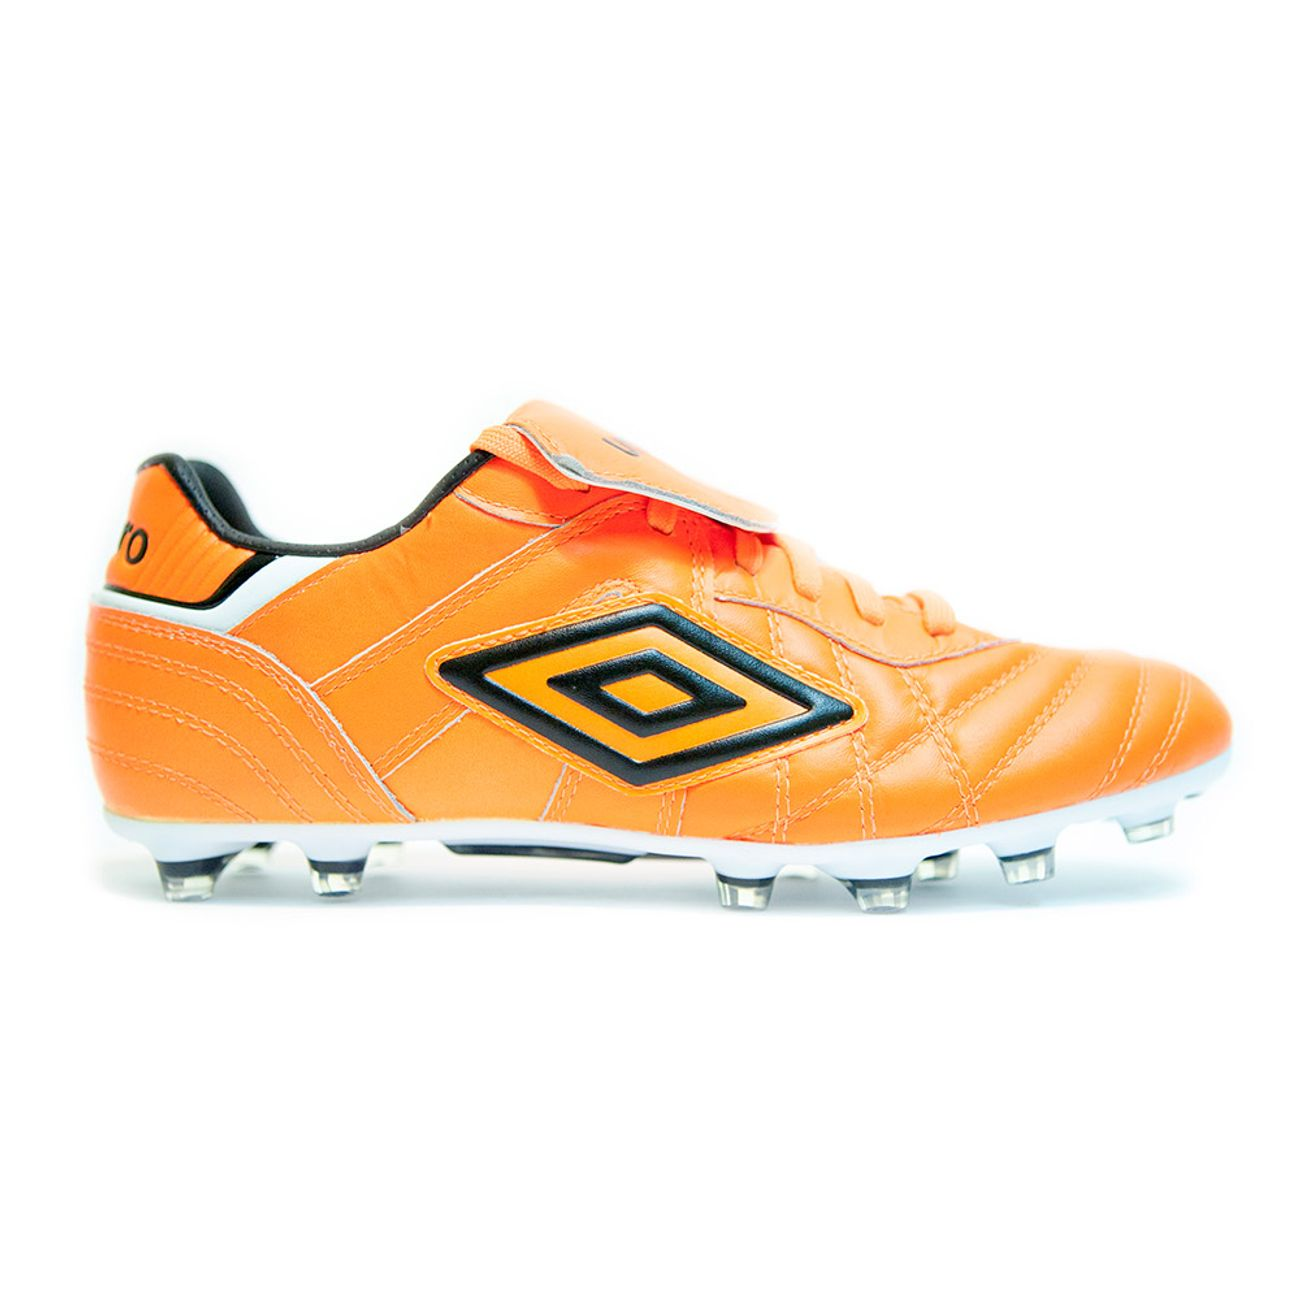 Pro Speciali Umbro Adulte Eternal Football w0myNnOv8